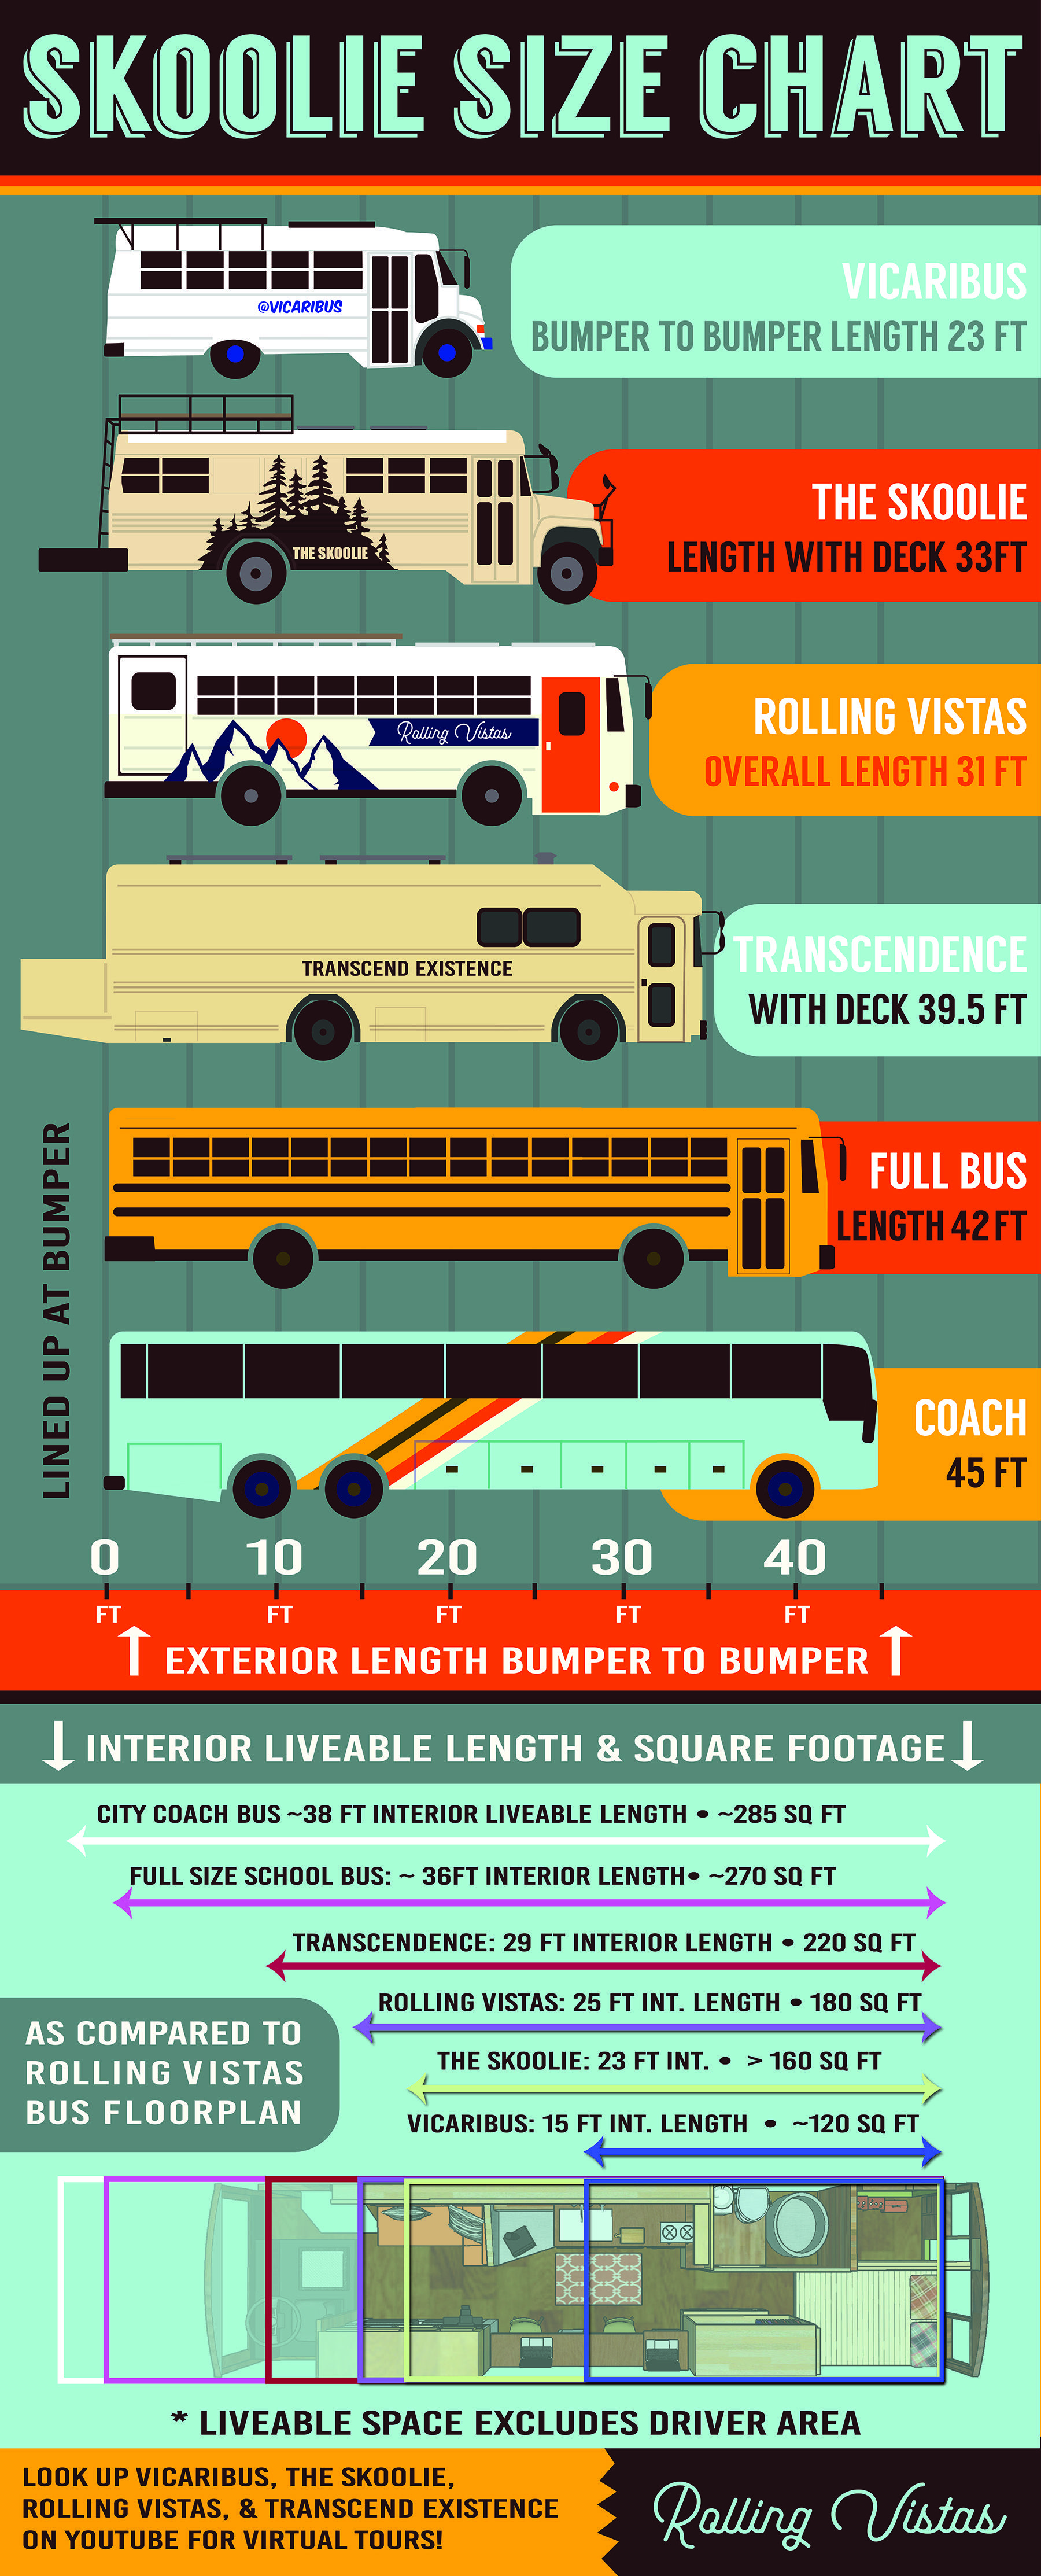 small resolution of school bus conversion definitive size guide what length skoolie is right for you by rolling vistas